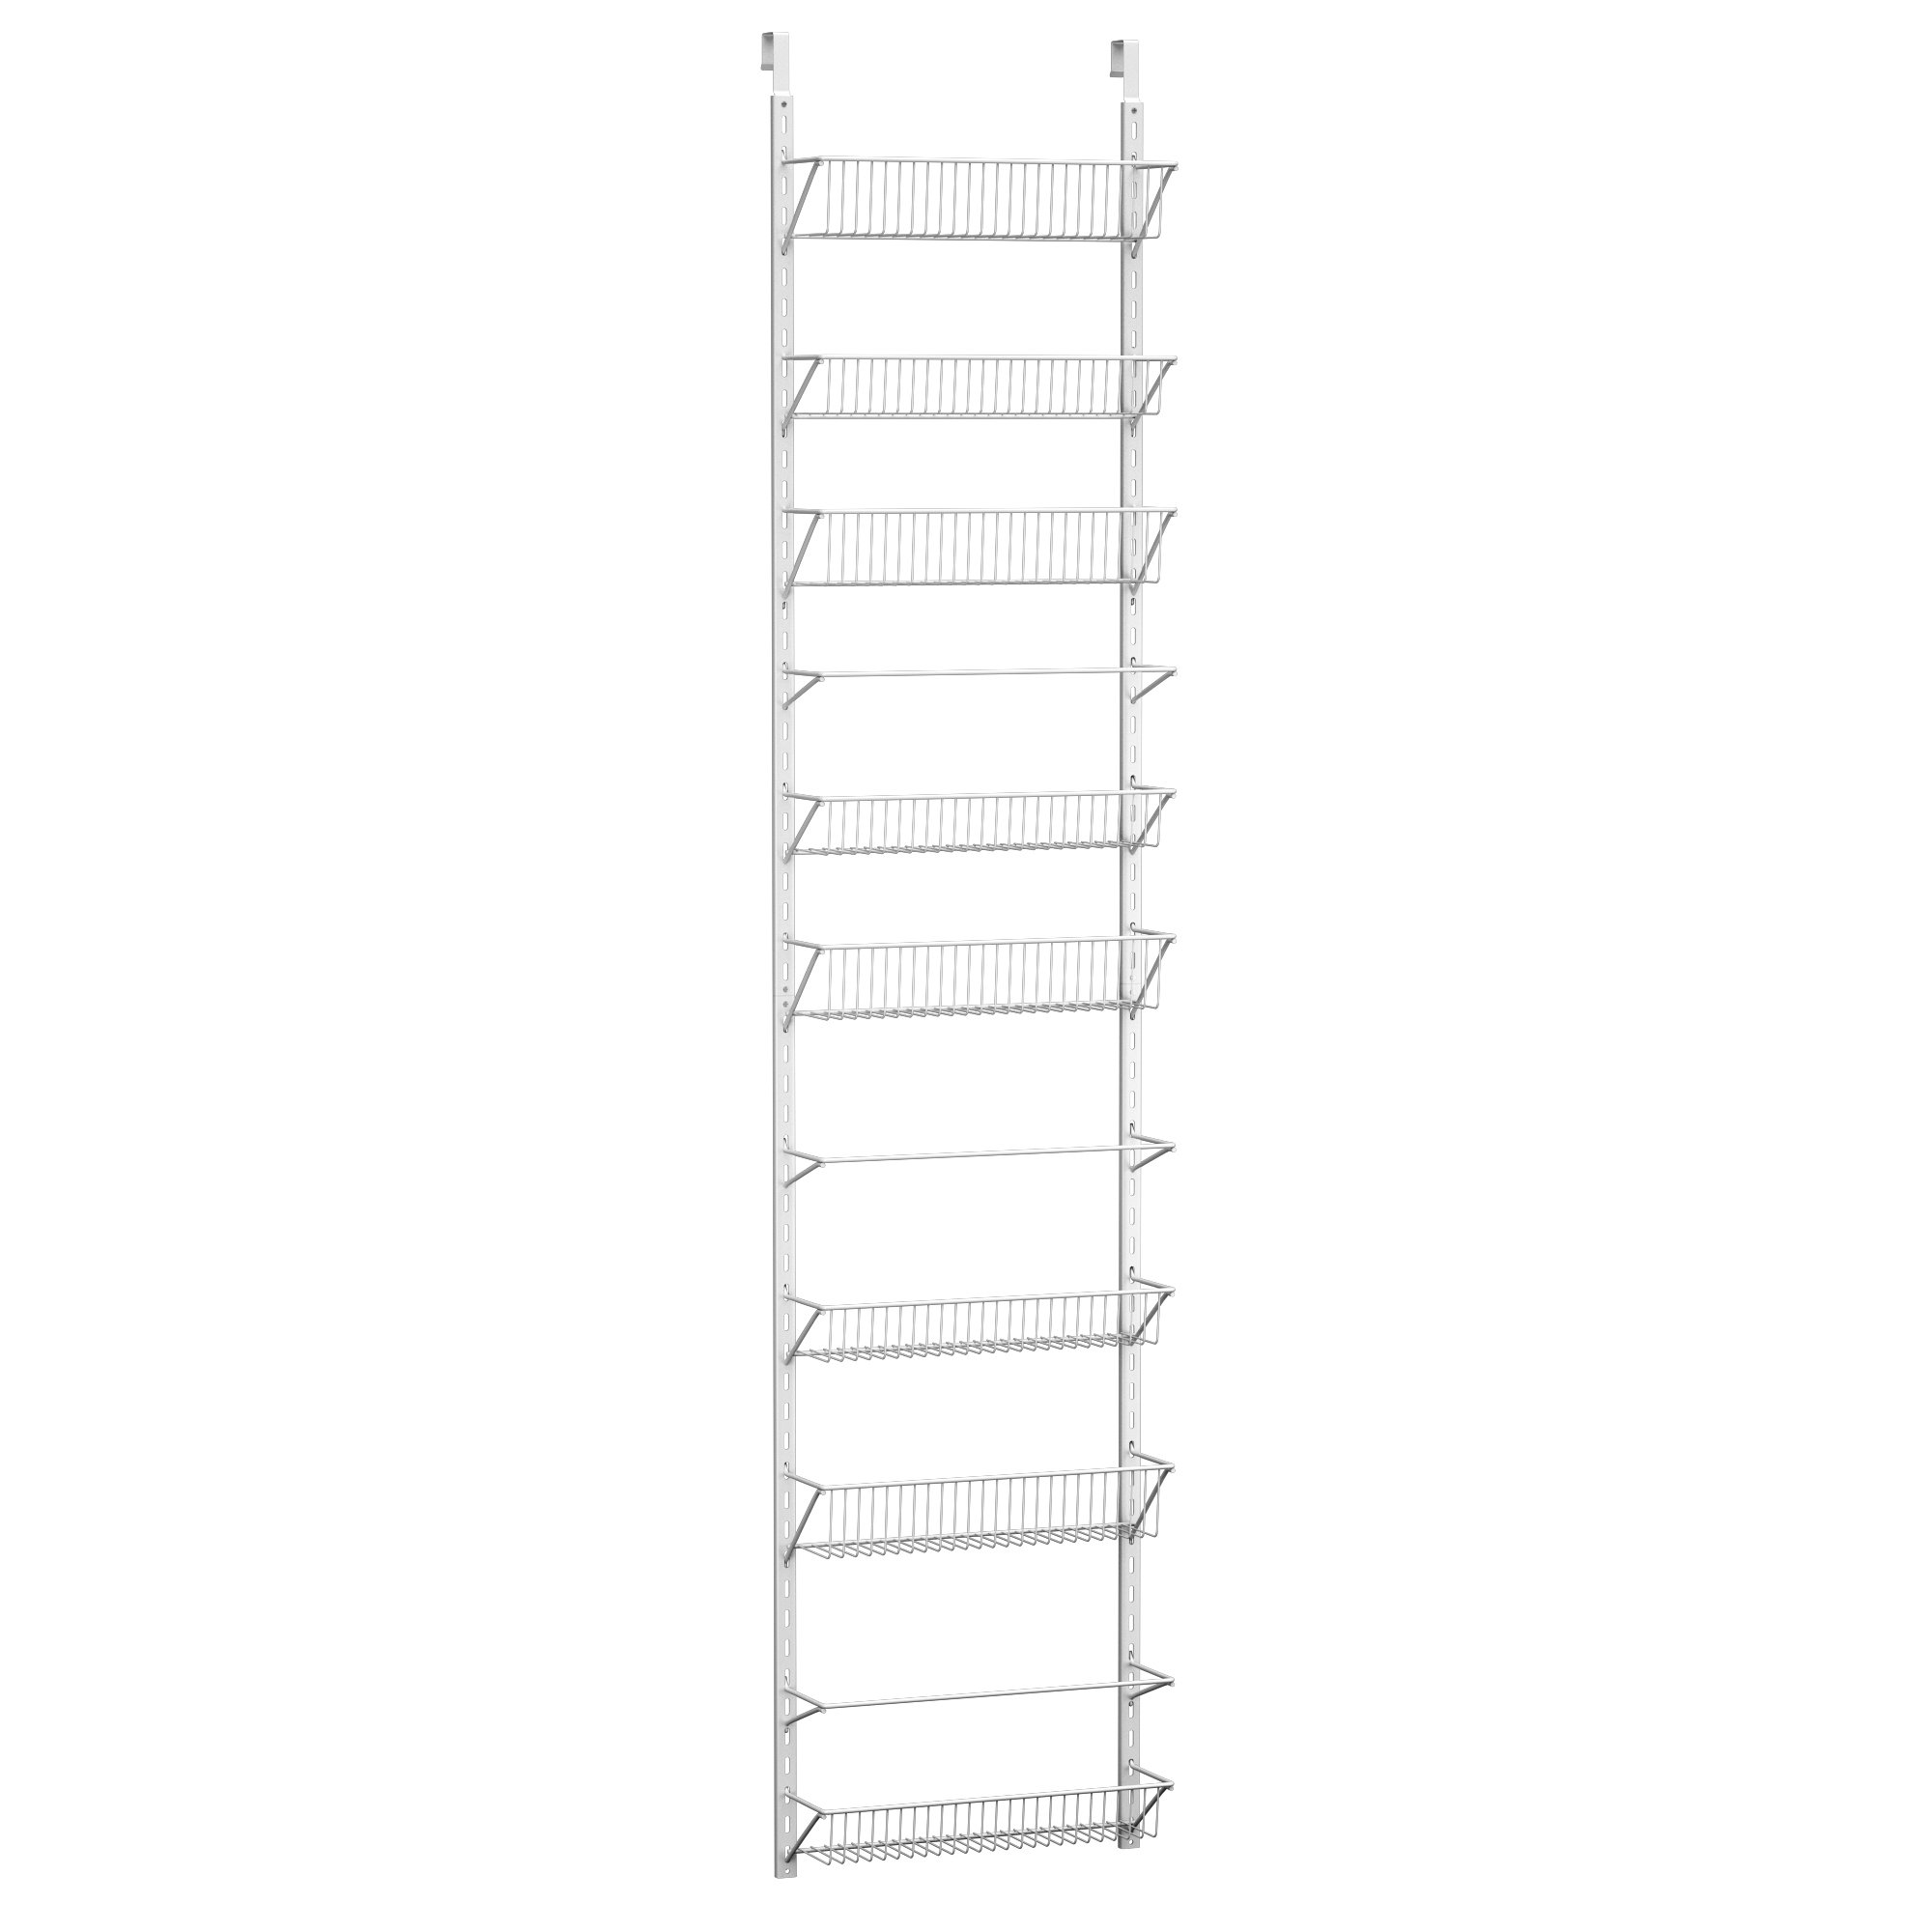 Home-Complete HC-2301 Over The Door Organizer-Space Saving Hanging Storage Shelves for Kitchen, Pantry, Closet-for Spices, Jars, Cleaning Products, White